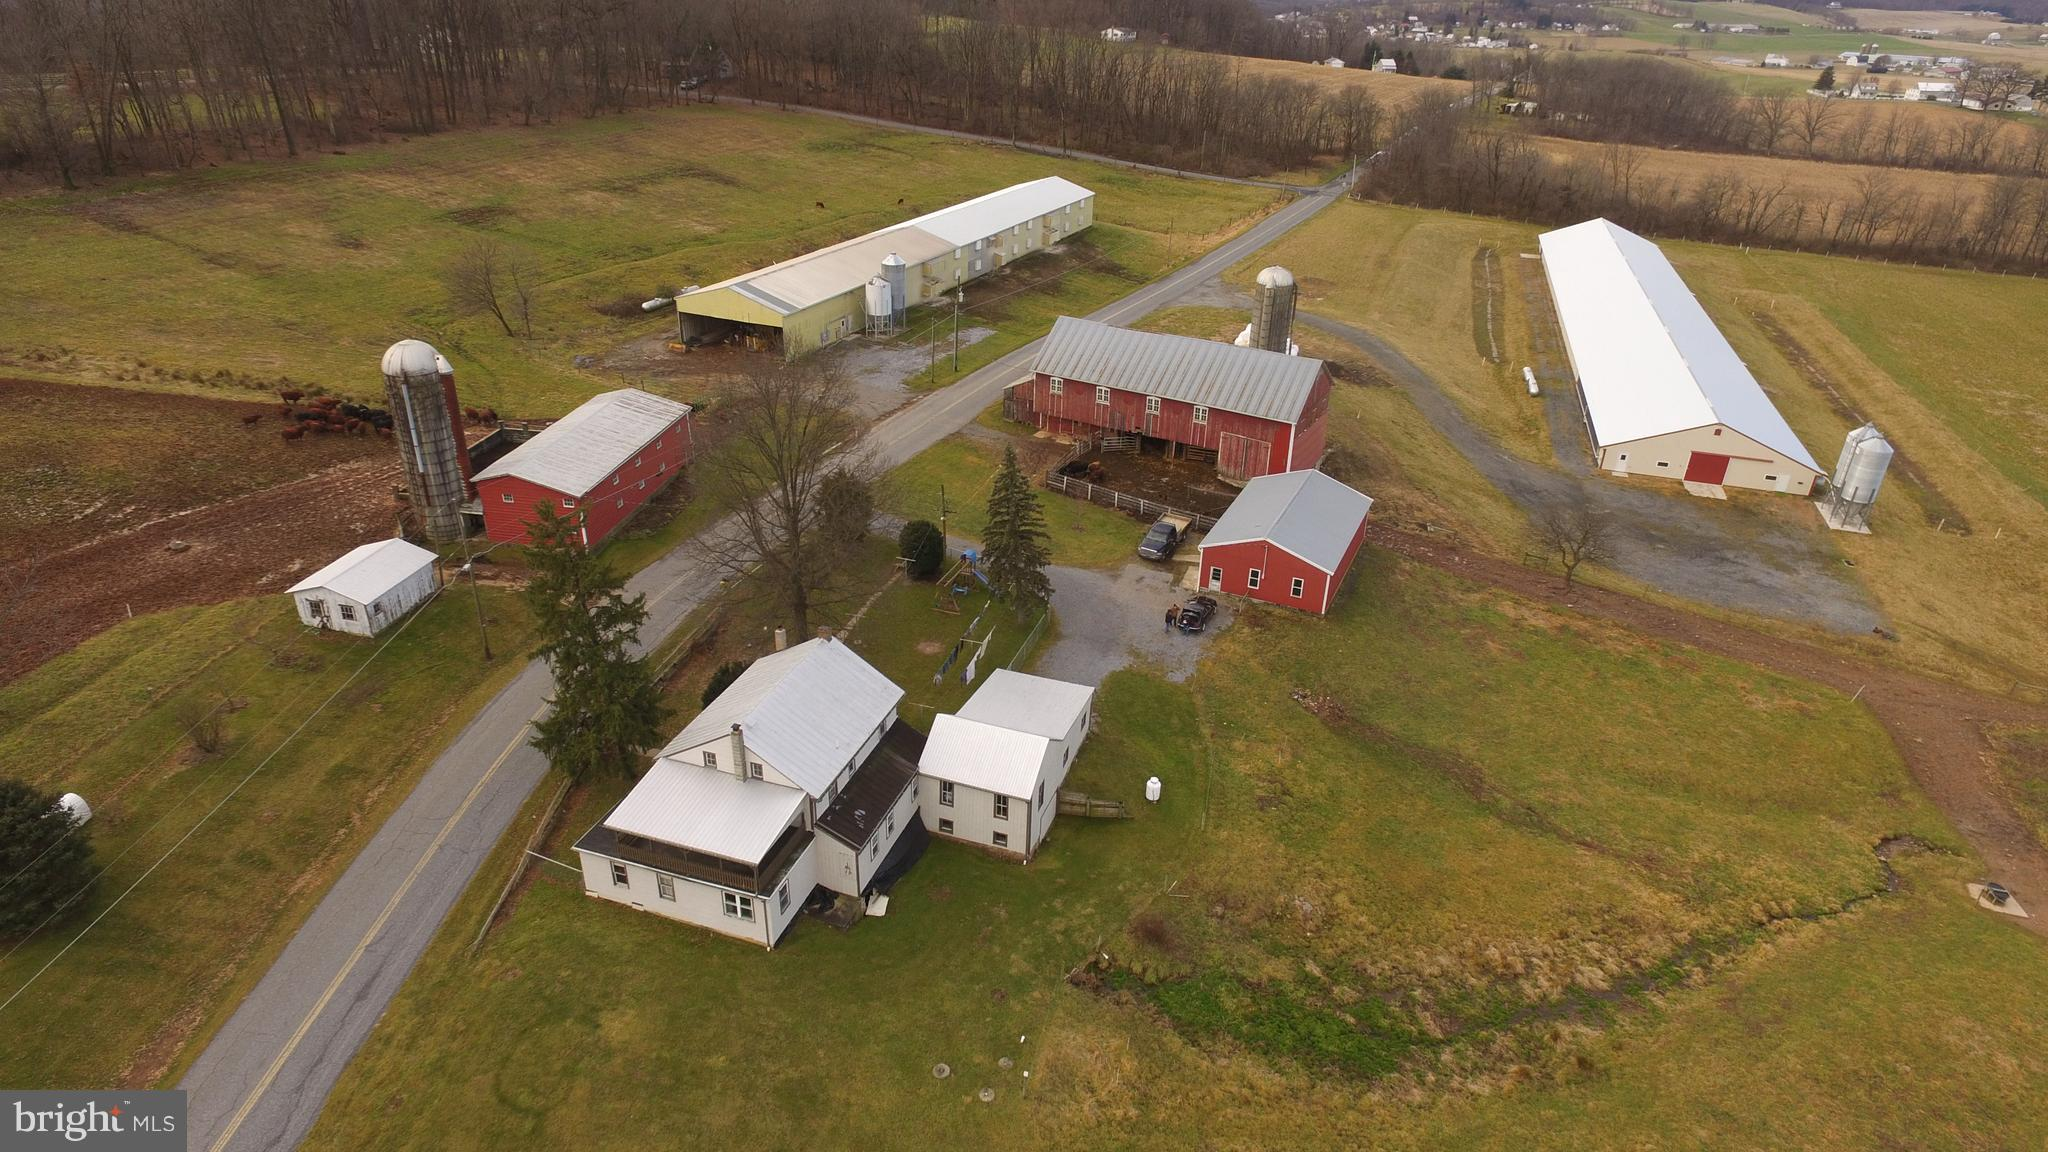 20 HACKMAN ROAD, NEWMANSTOWN, PA 17073